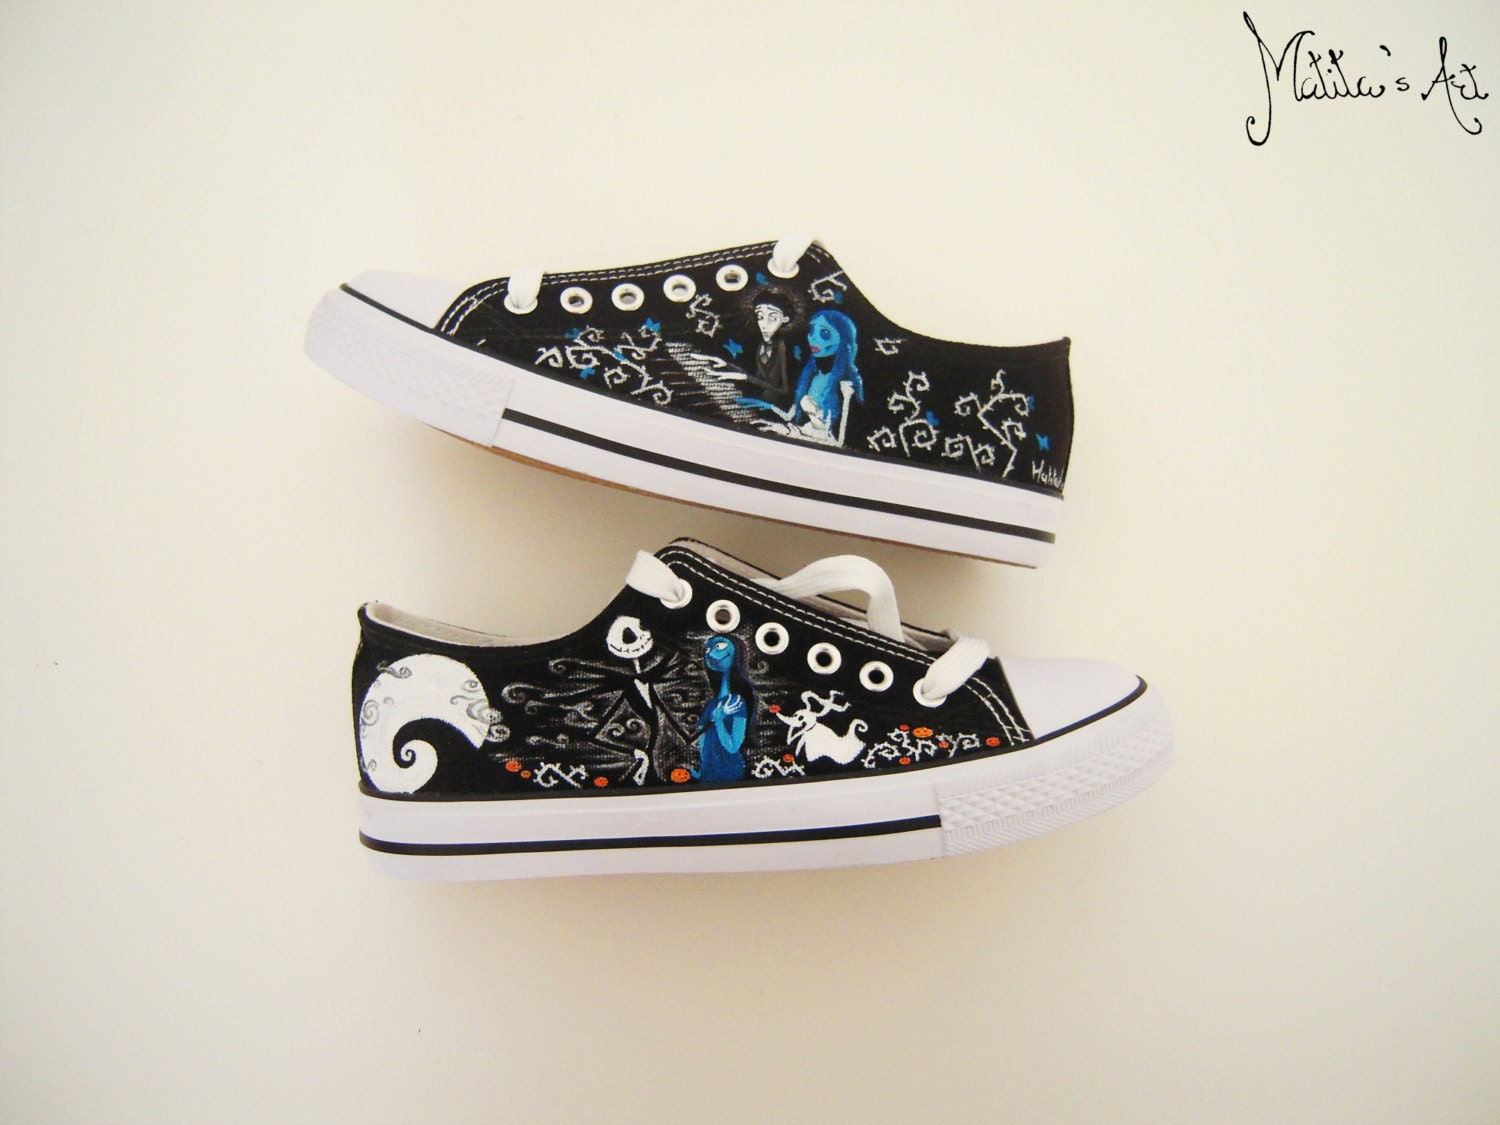 9b083b206cfd9 Tim Burton hand painted shoes / Corpse bride shoes / Nightmare before  christmas shoes